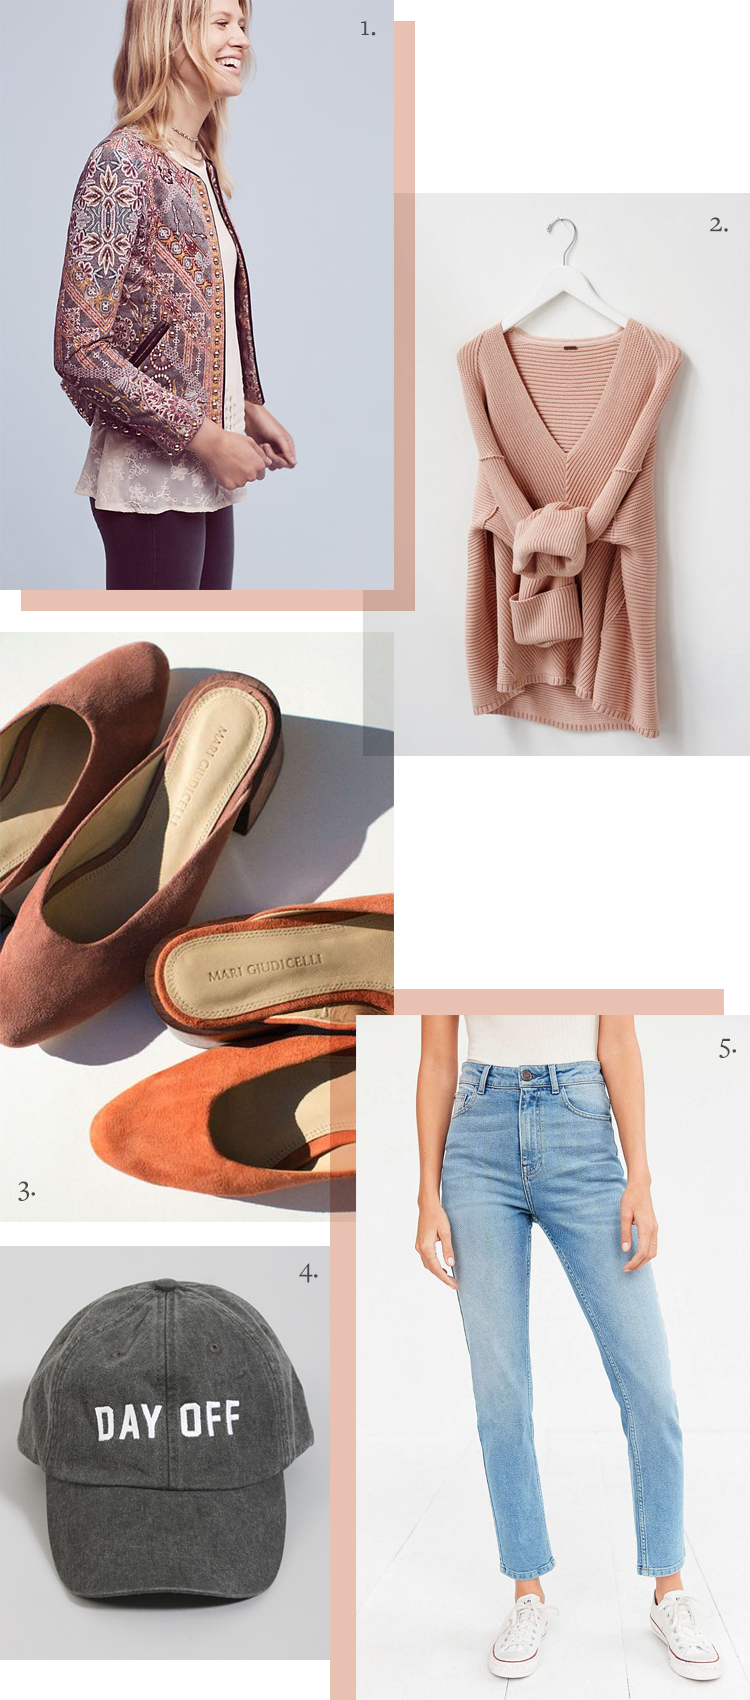 When I'm busy, I reach for my fashion uniform: chunky oversized sweater, cropped jeans in a light wash, cropped jacket with embellishment, mules or clogs, and a baseball hat! See more style inspiration on jojotastic.com